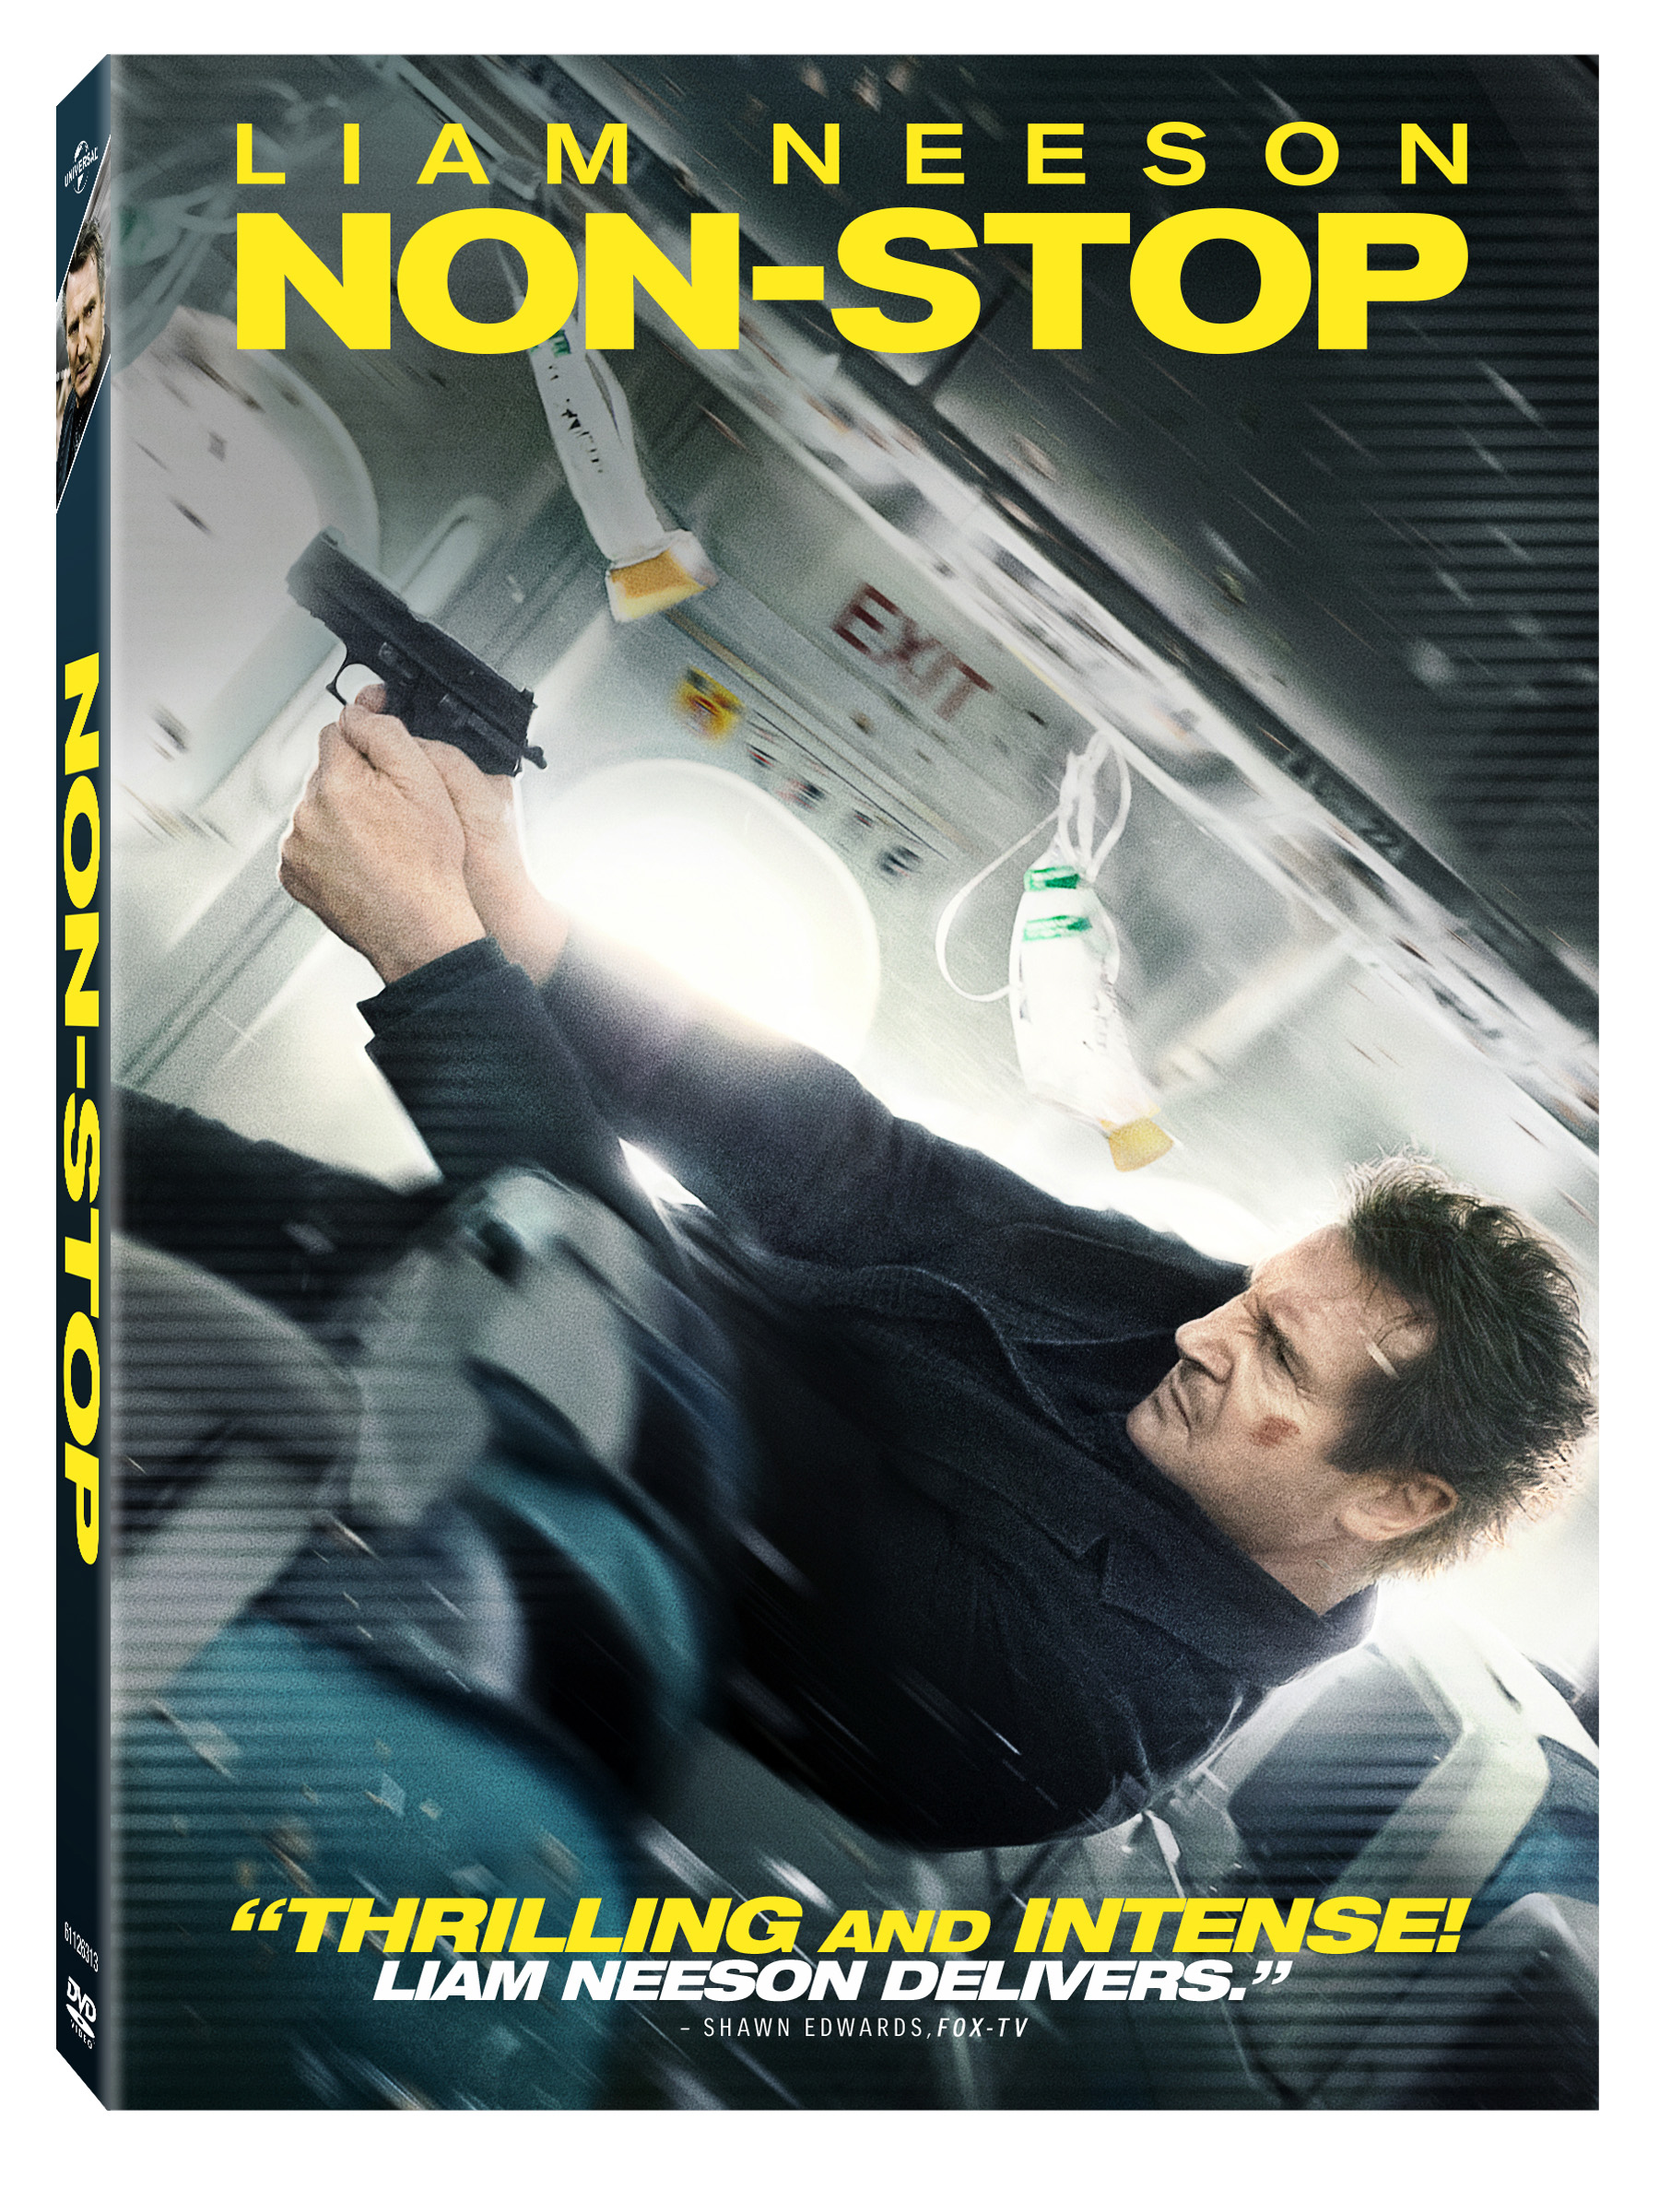 Non-Stop on Blu-ray/DVD Tuesday 6/10/14 – DVD Giveaway